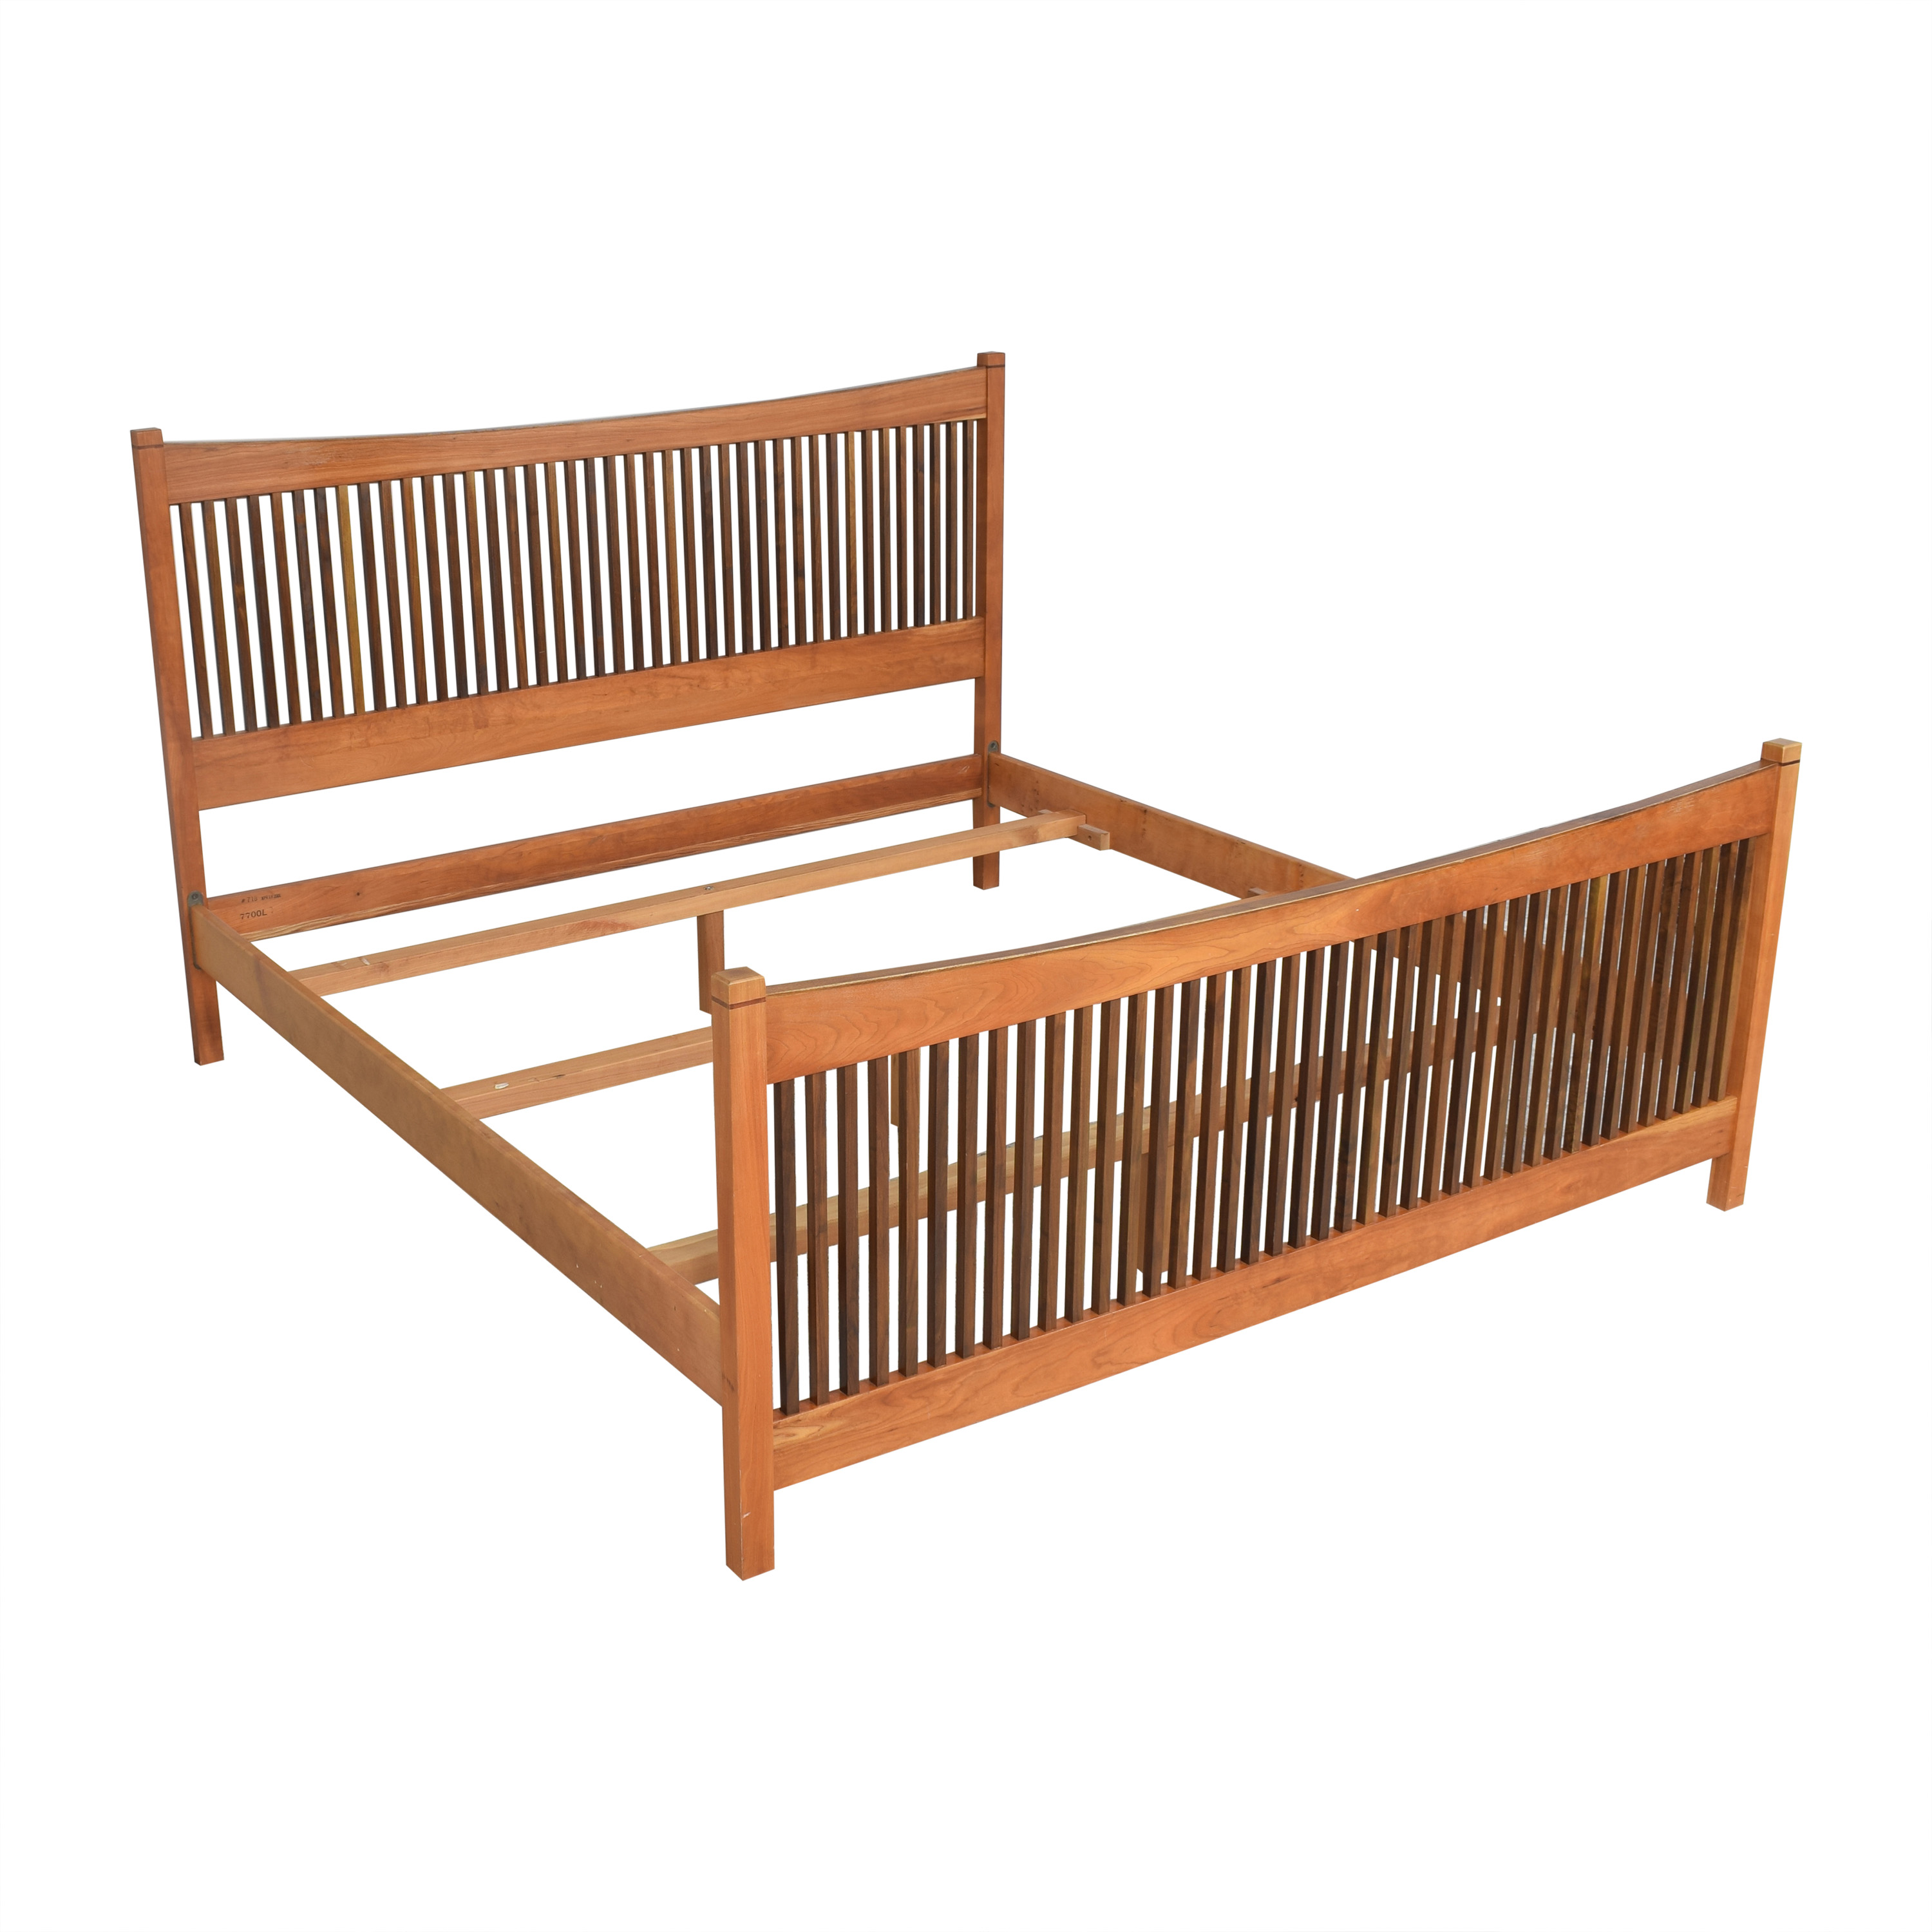 shop Stickley Furniture Stickley Furniture Metropolitan Spindle King Bed online